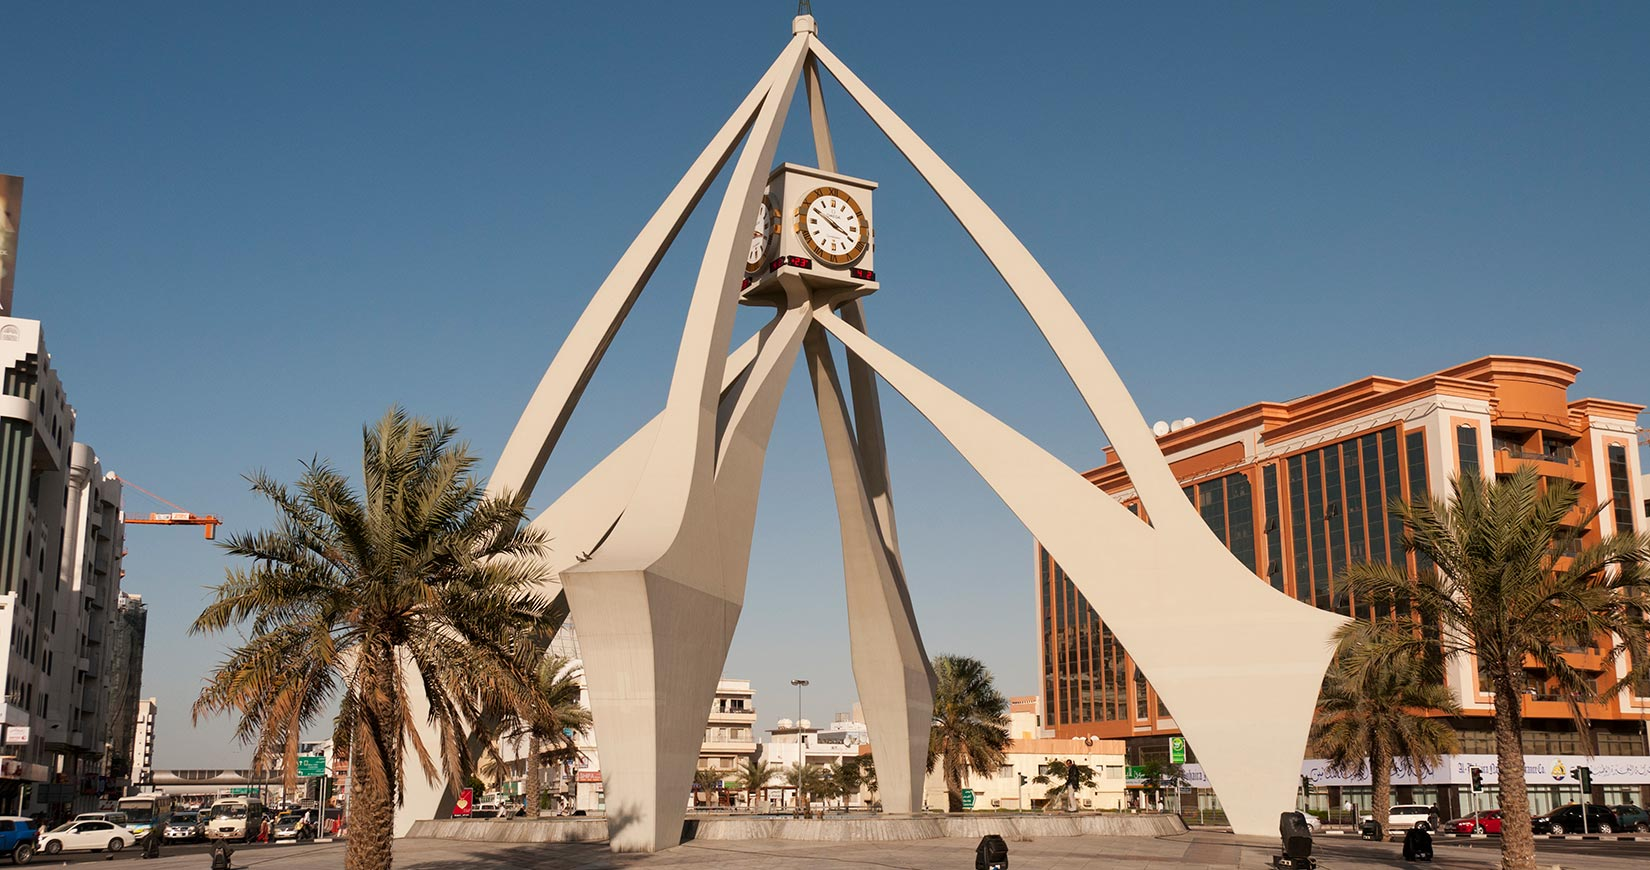 Dubai Clock Tower design